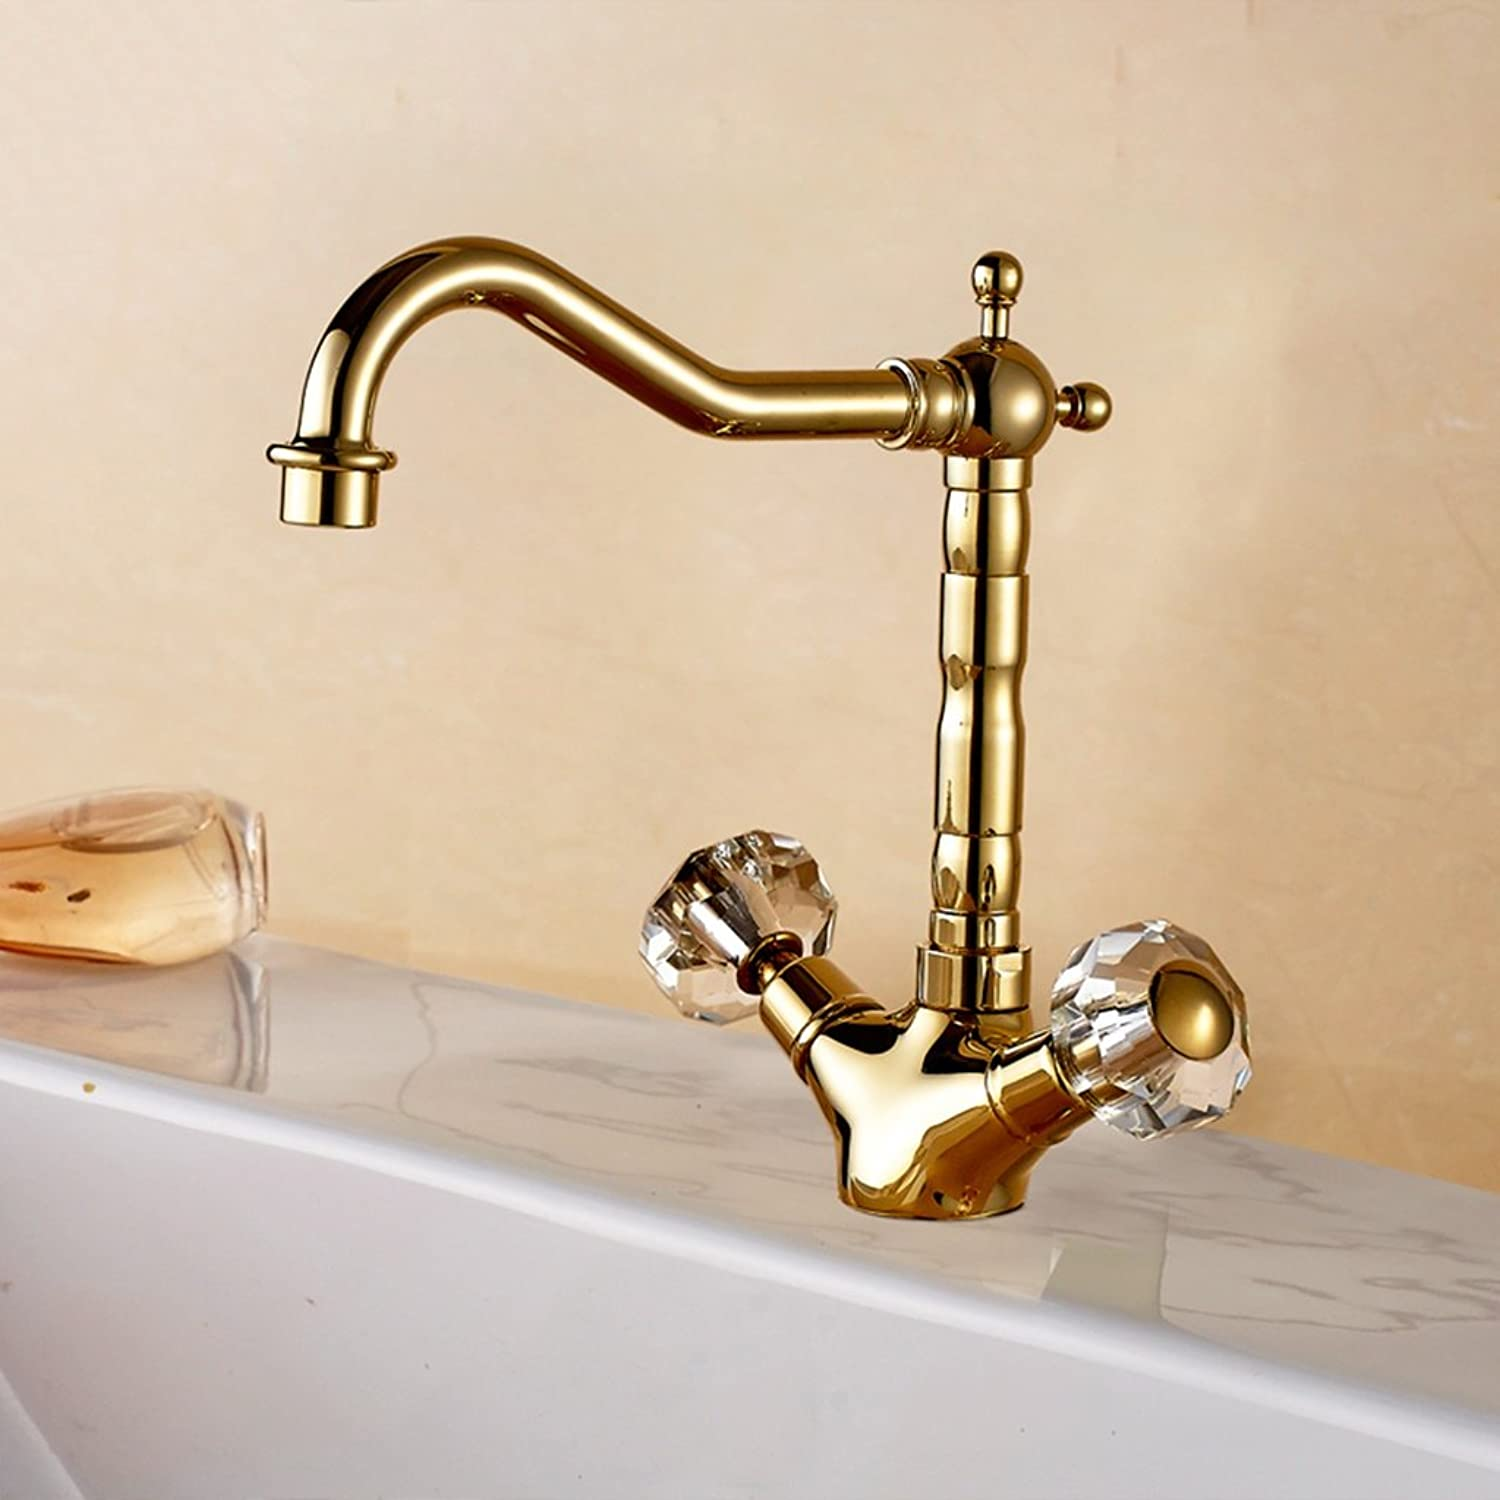 Cqq faucet Full copper European style gold-plated single-hole hot and cold faucet Bathroom crystal faucet Hot and cold faucet ( Size   1722cm )